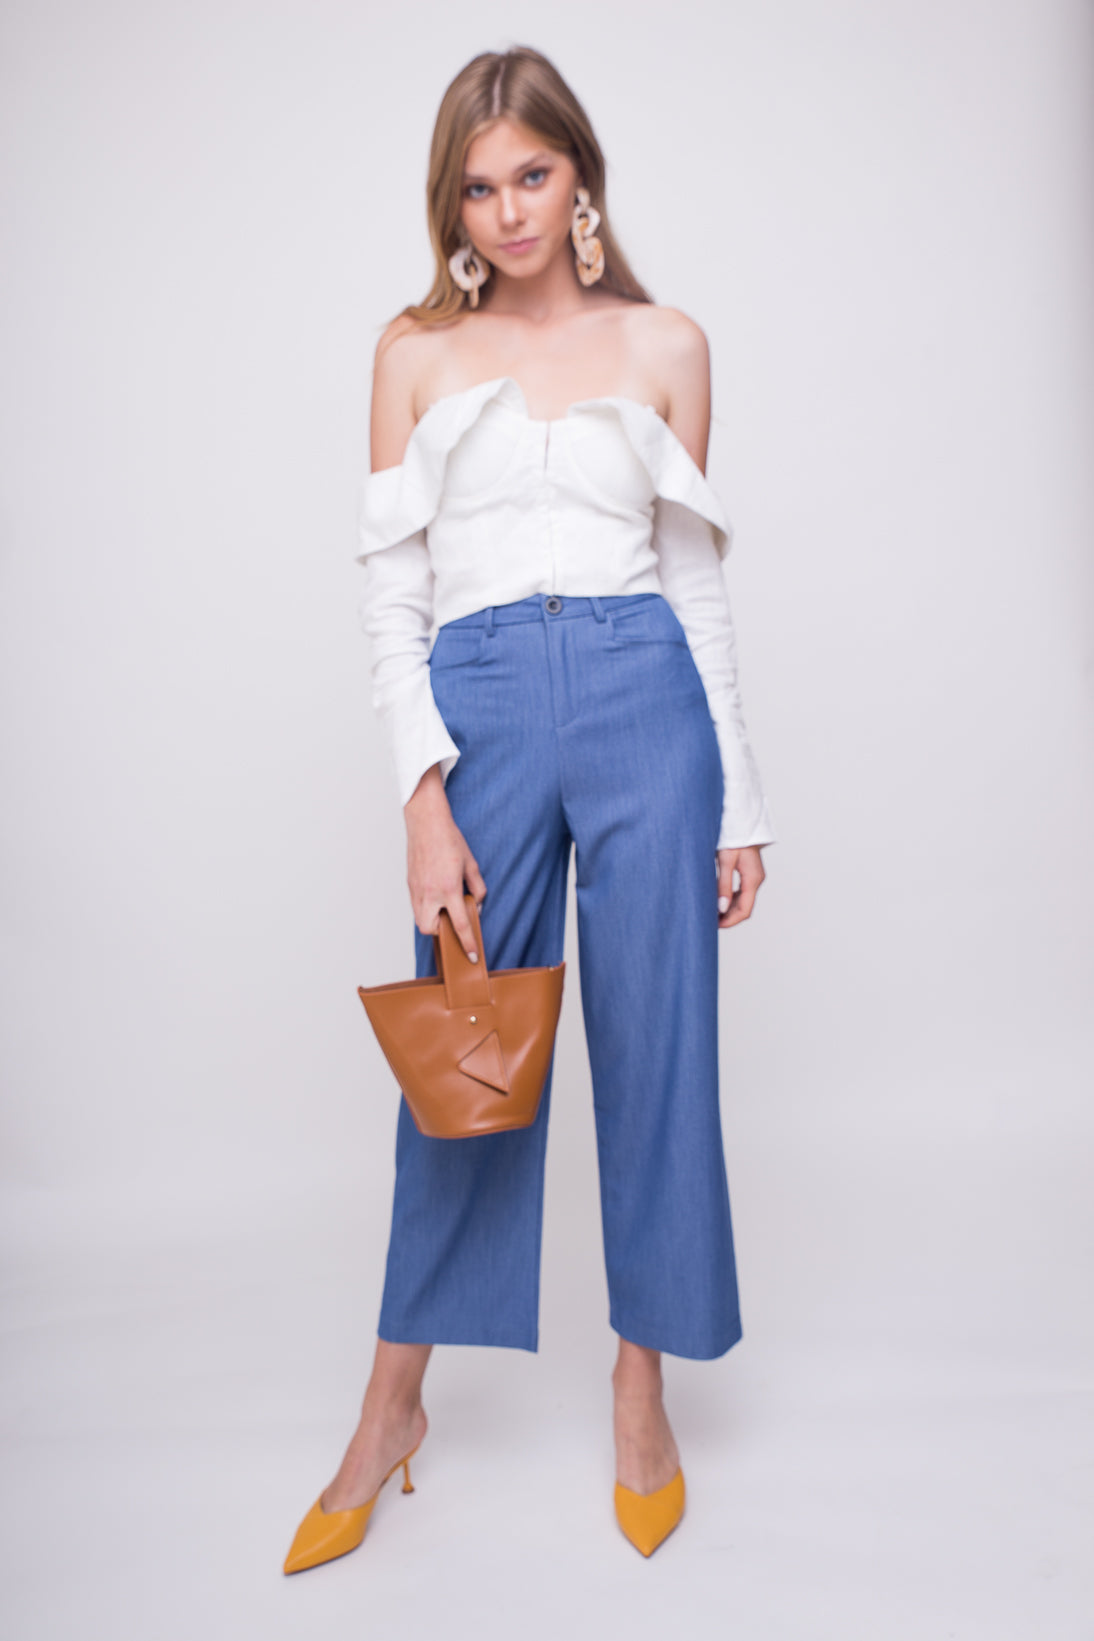 Light weight, high waist, play on denim loose dress pants.